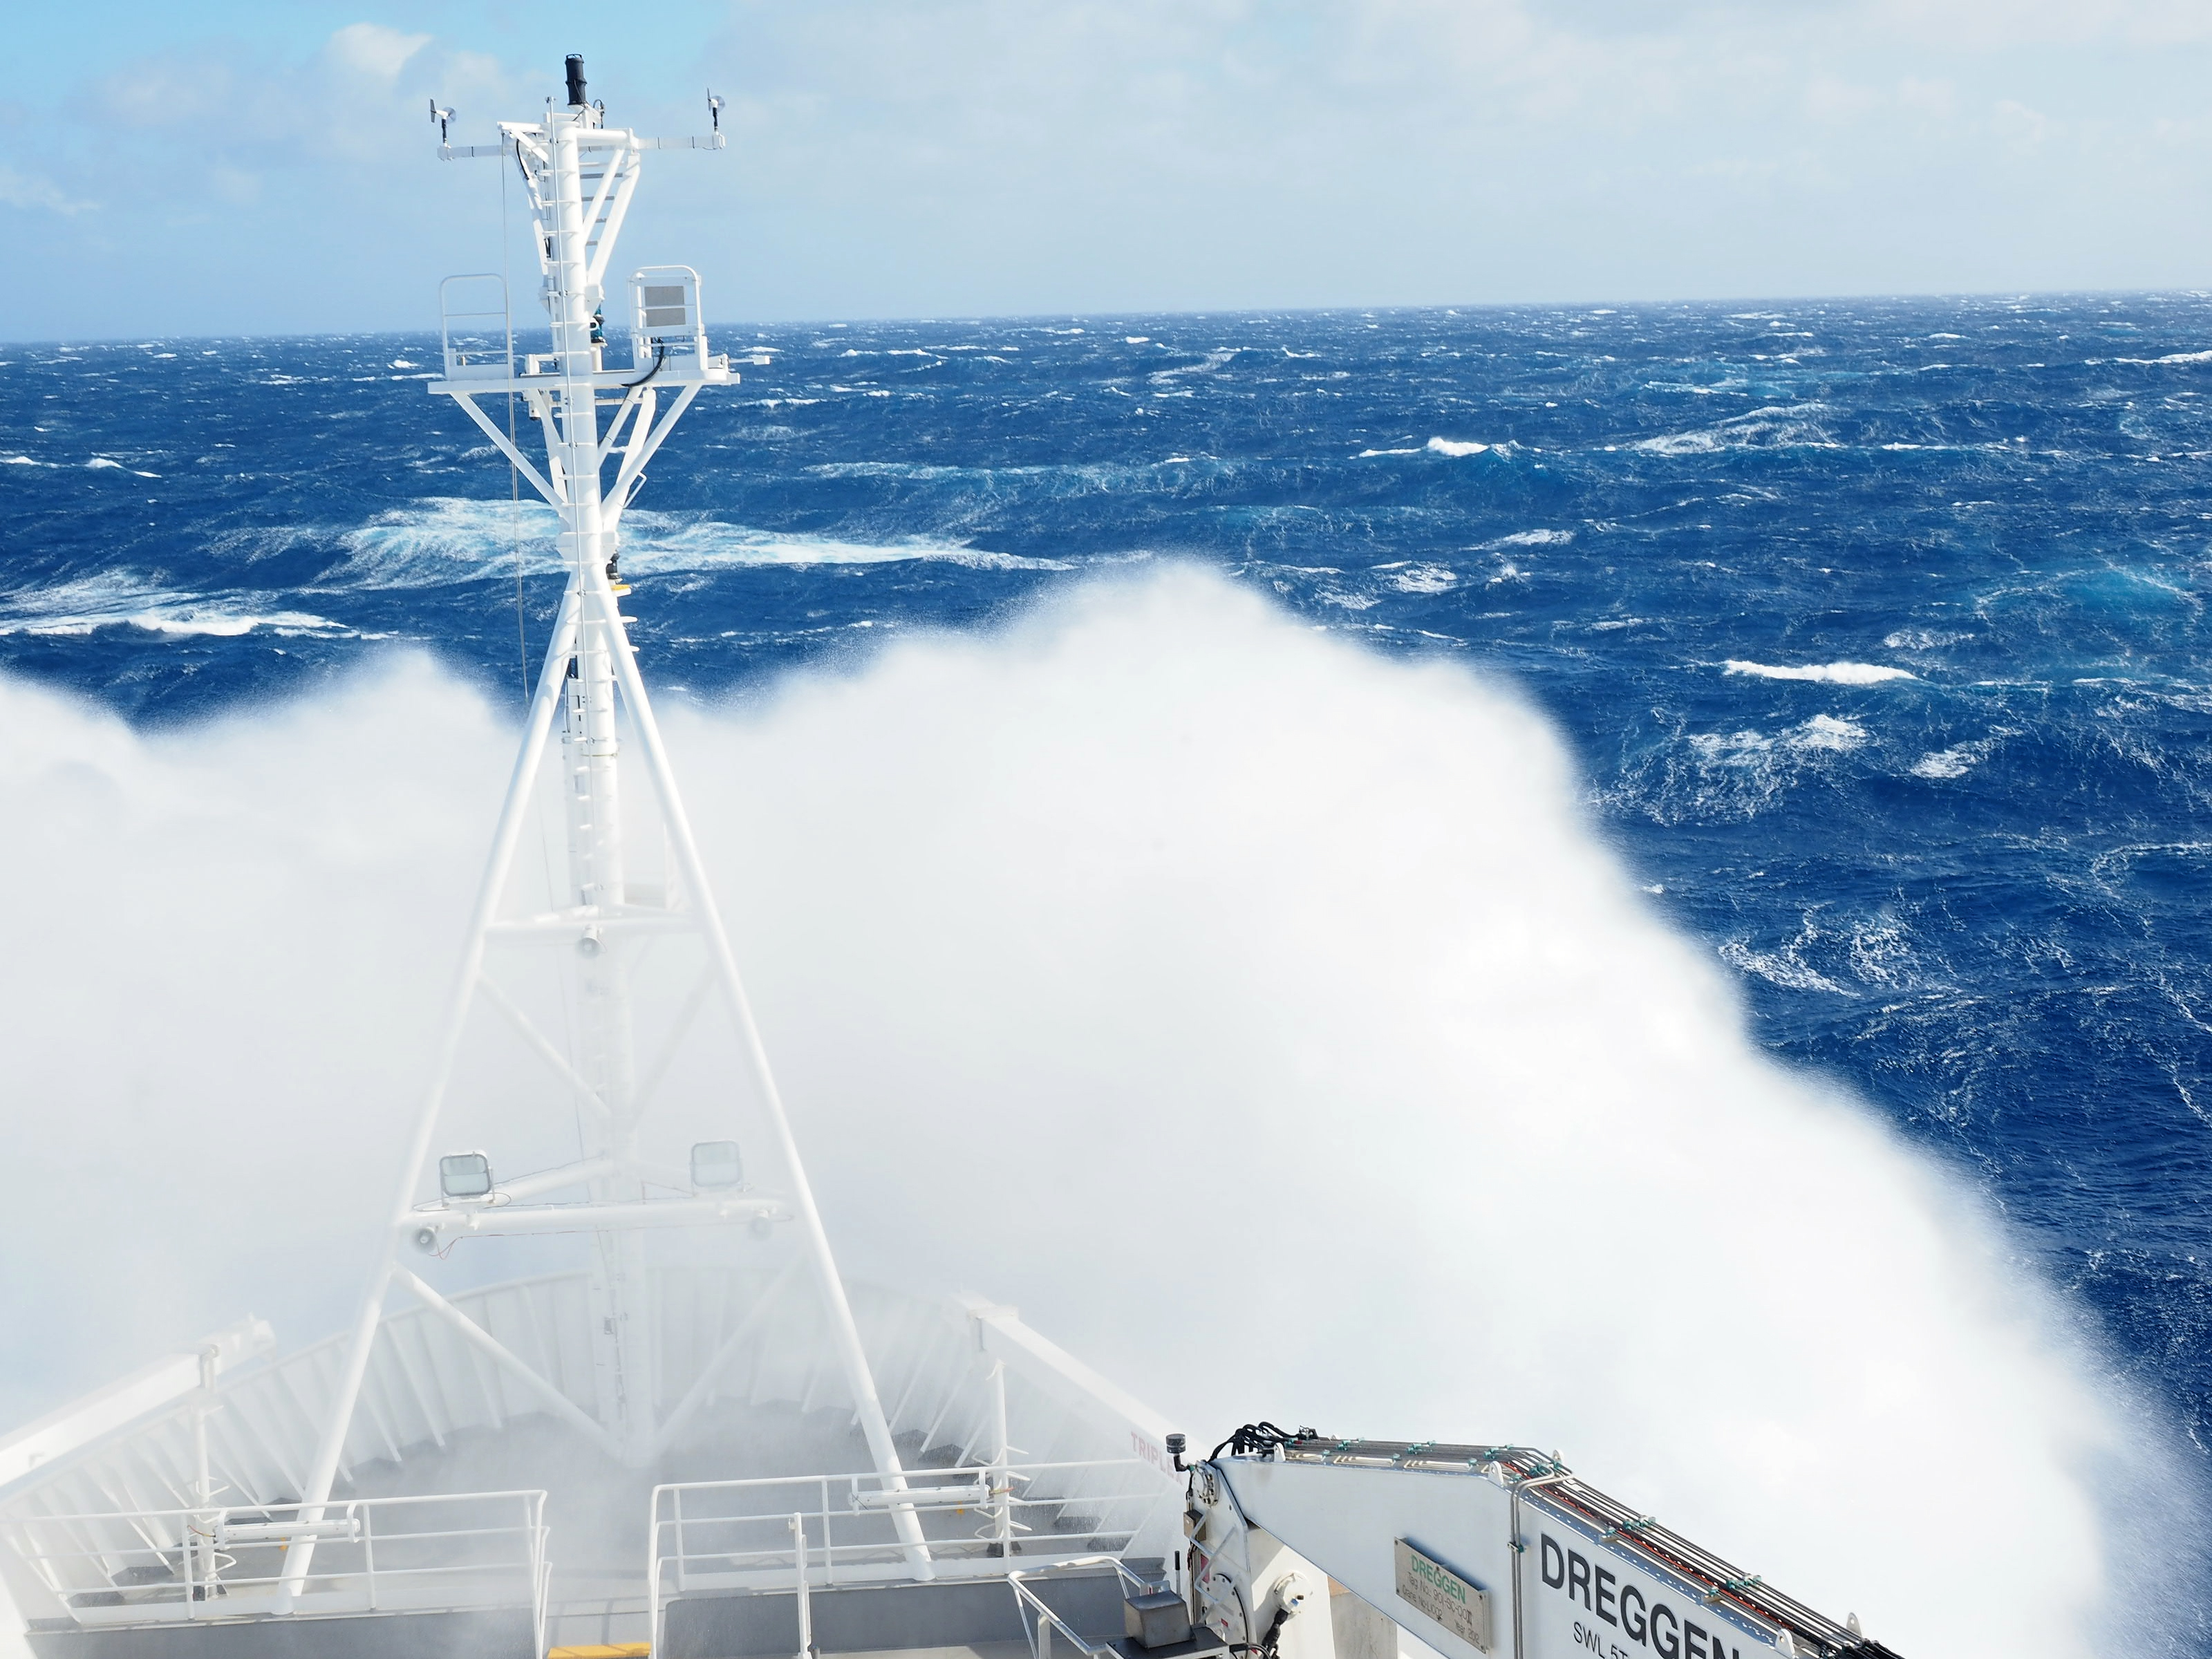 Wave crashing over the front of the RV Investigator as it moves through the Southern Ocean.